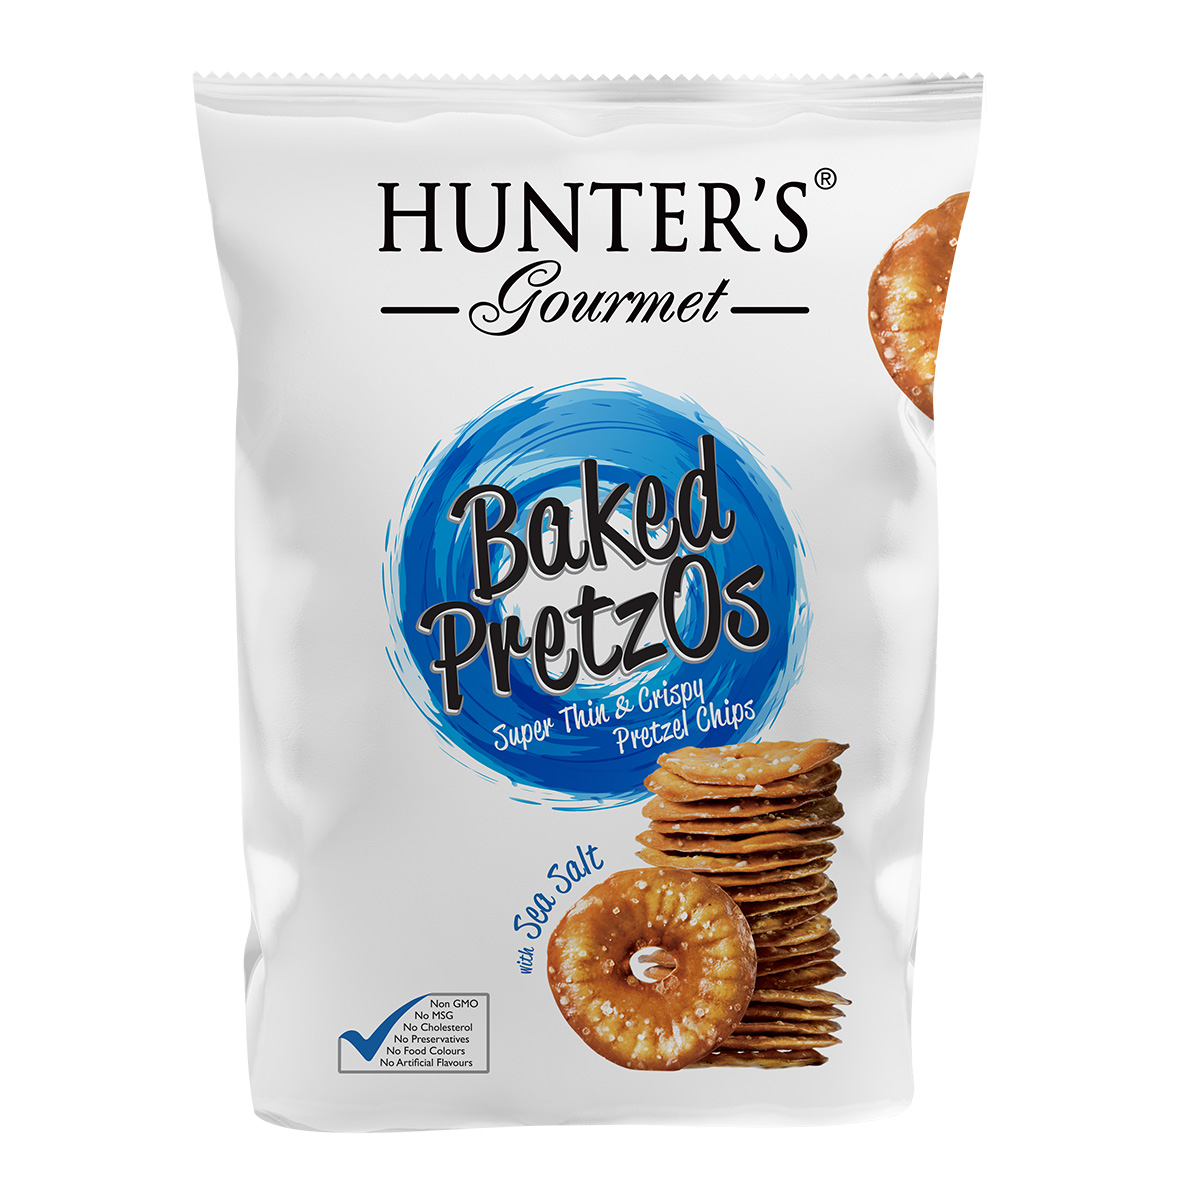 Hunter's Gourmet Baked PretzOs With Sea Salt